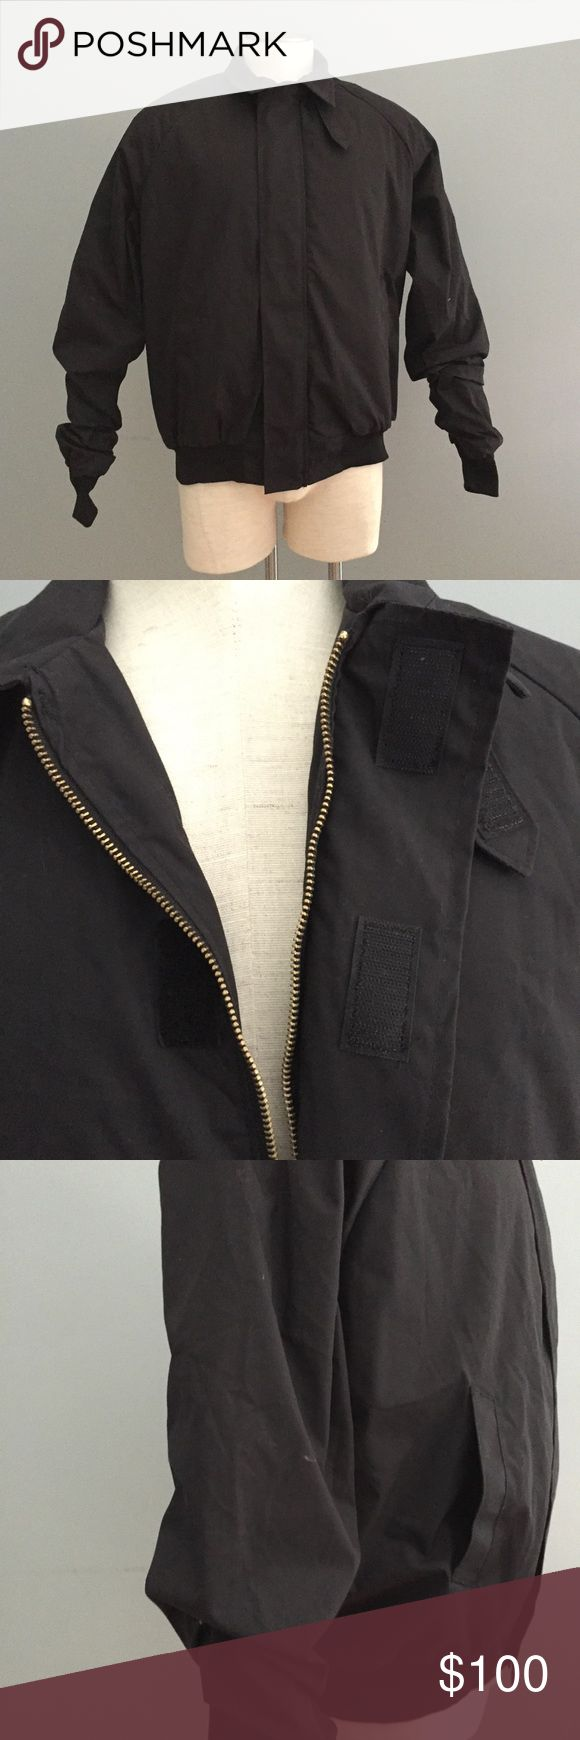 "DSCP quarterdeck black military jacket med long Fully lined zip jacket with hook and loop placket closure overlay. Excellent condition.  Approximate measurements: Length: 25.5"" Chest across pit to pit: 24"" A DSCP Jackets & Coats Military & Field"